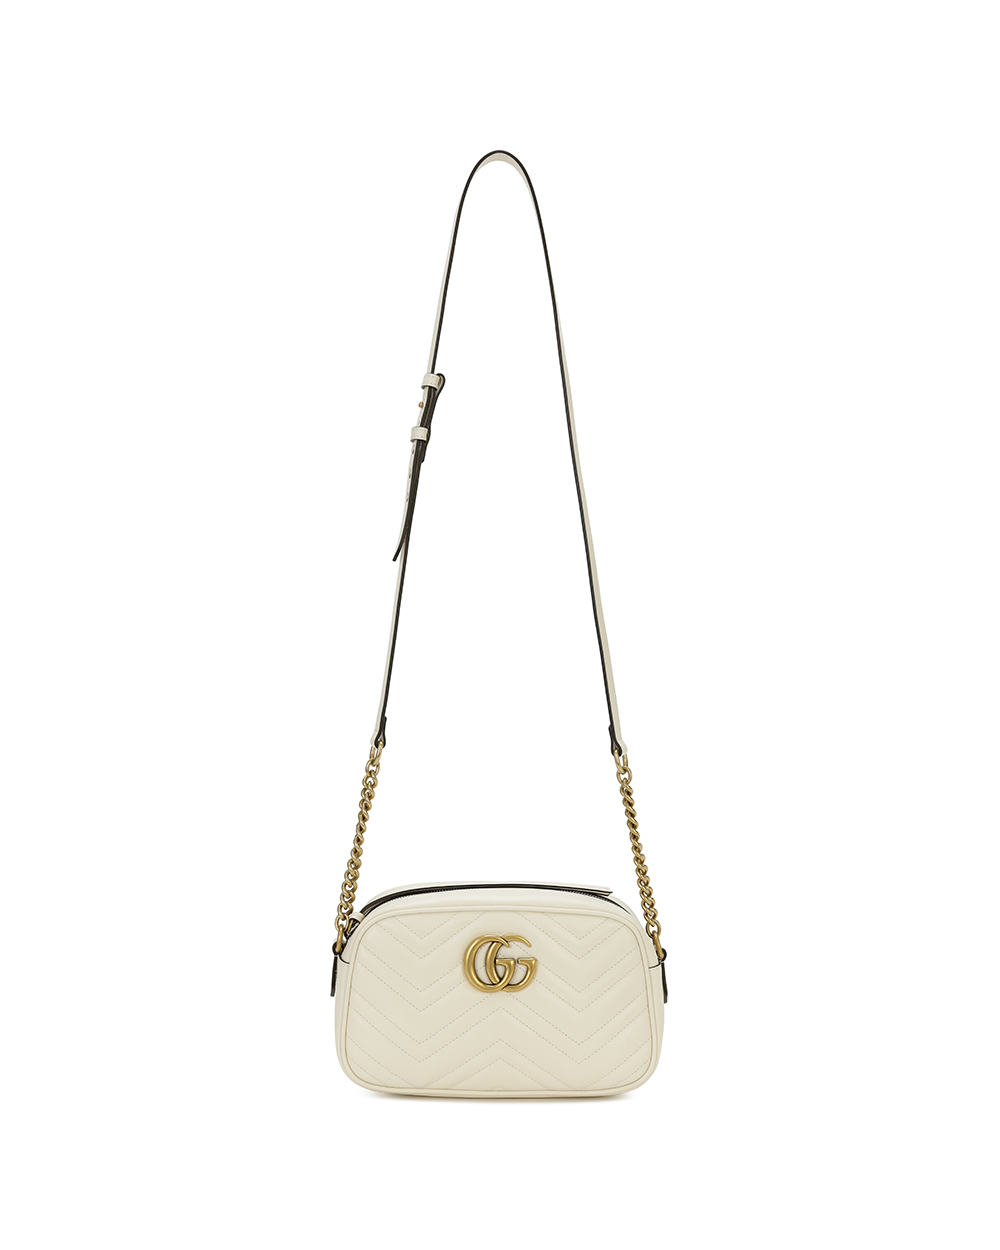 GG Marmont small shoulder bag 1